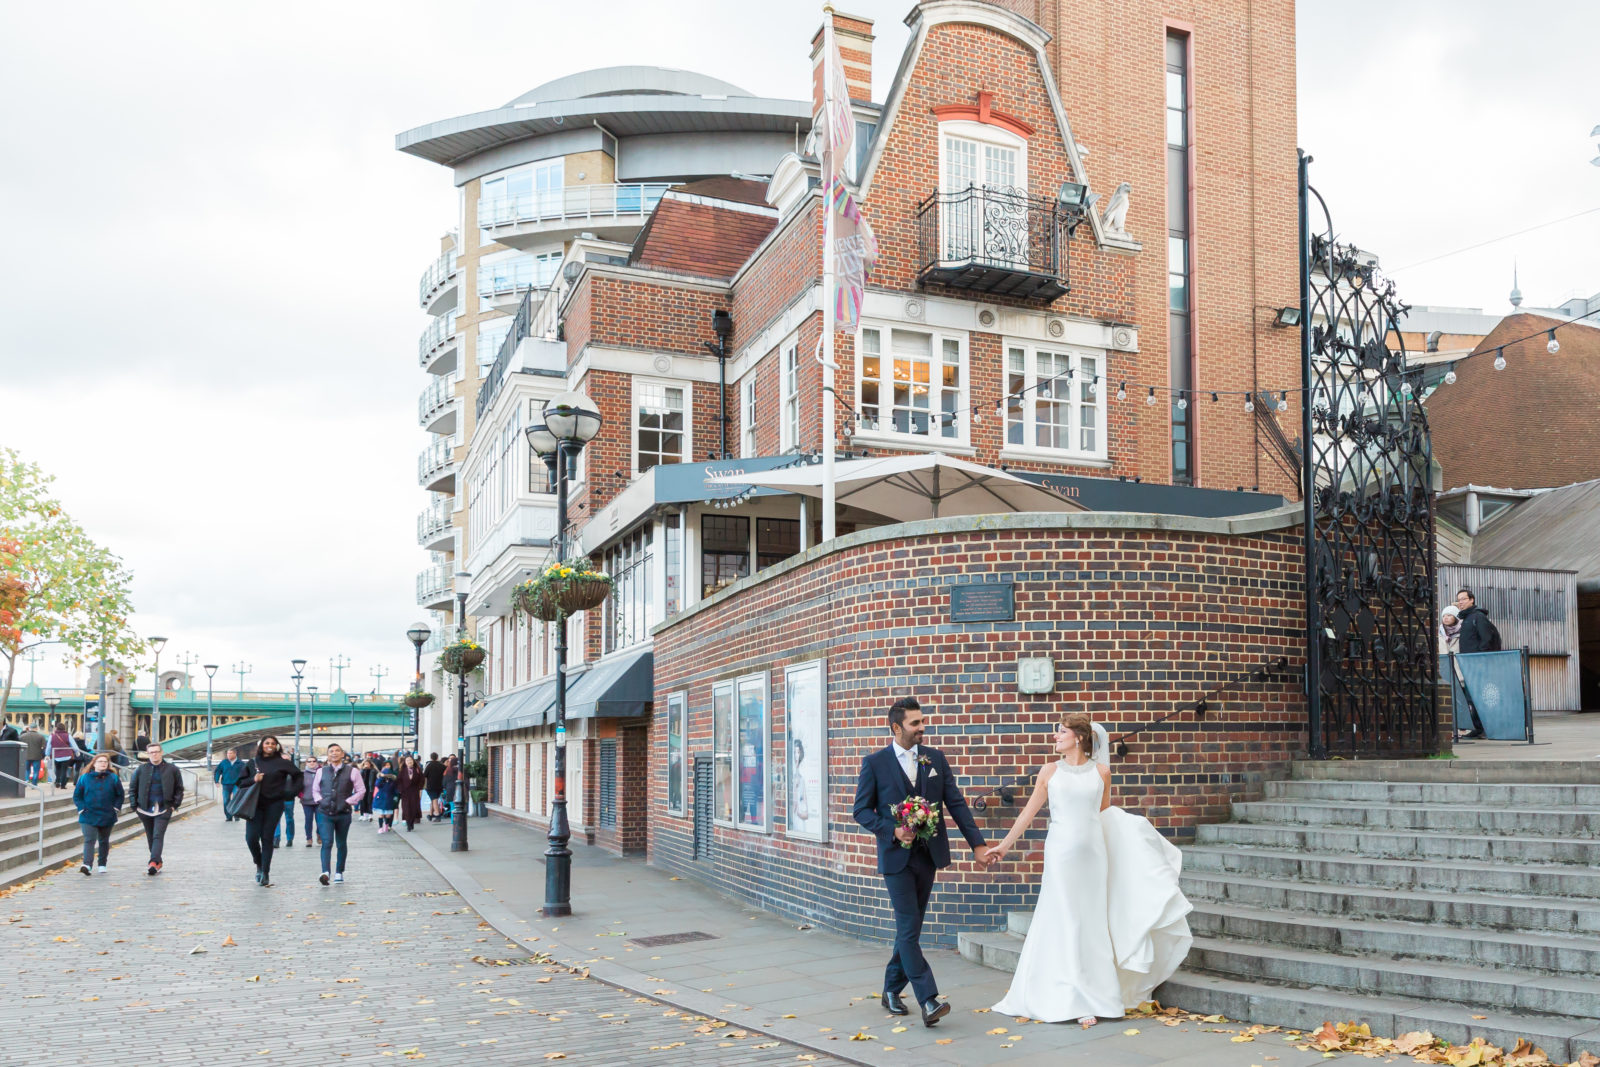 wedding-at-Shakespeares-globe.jpg